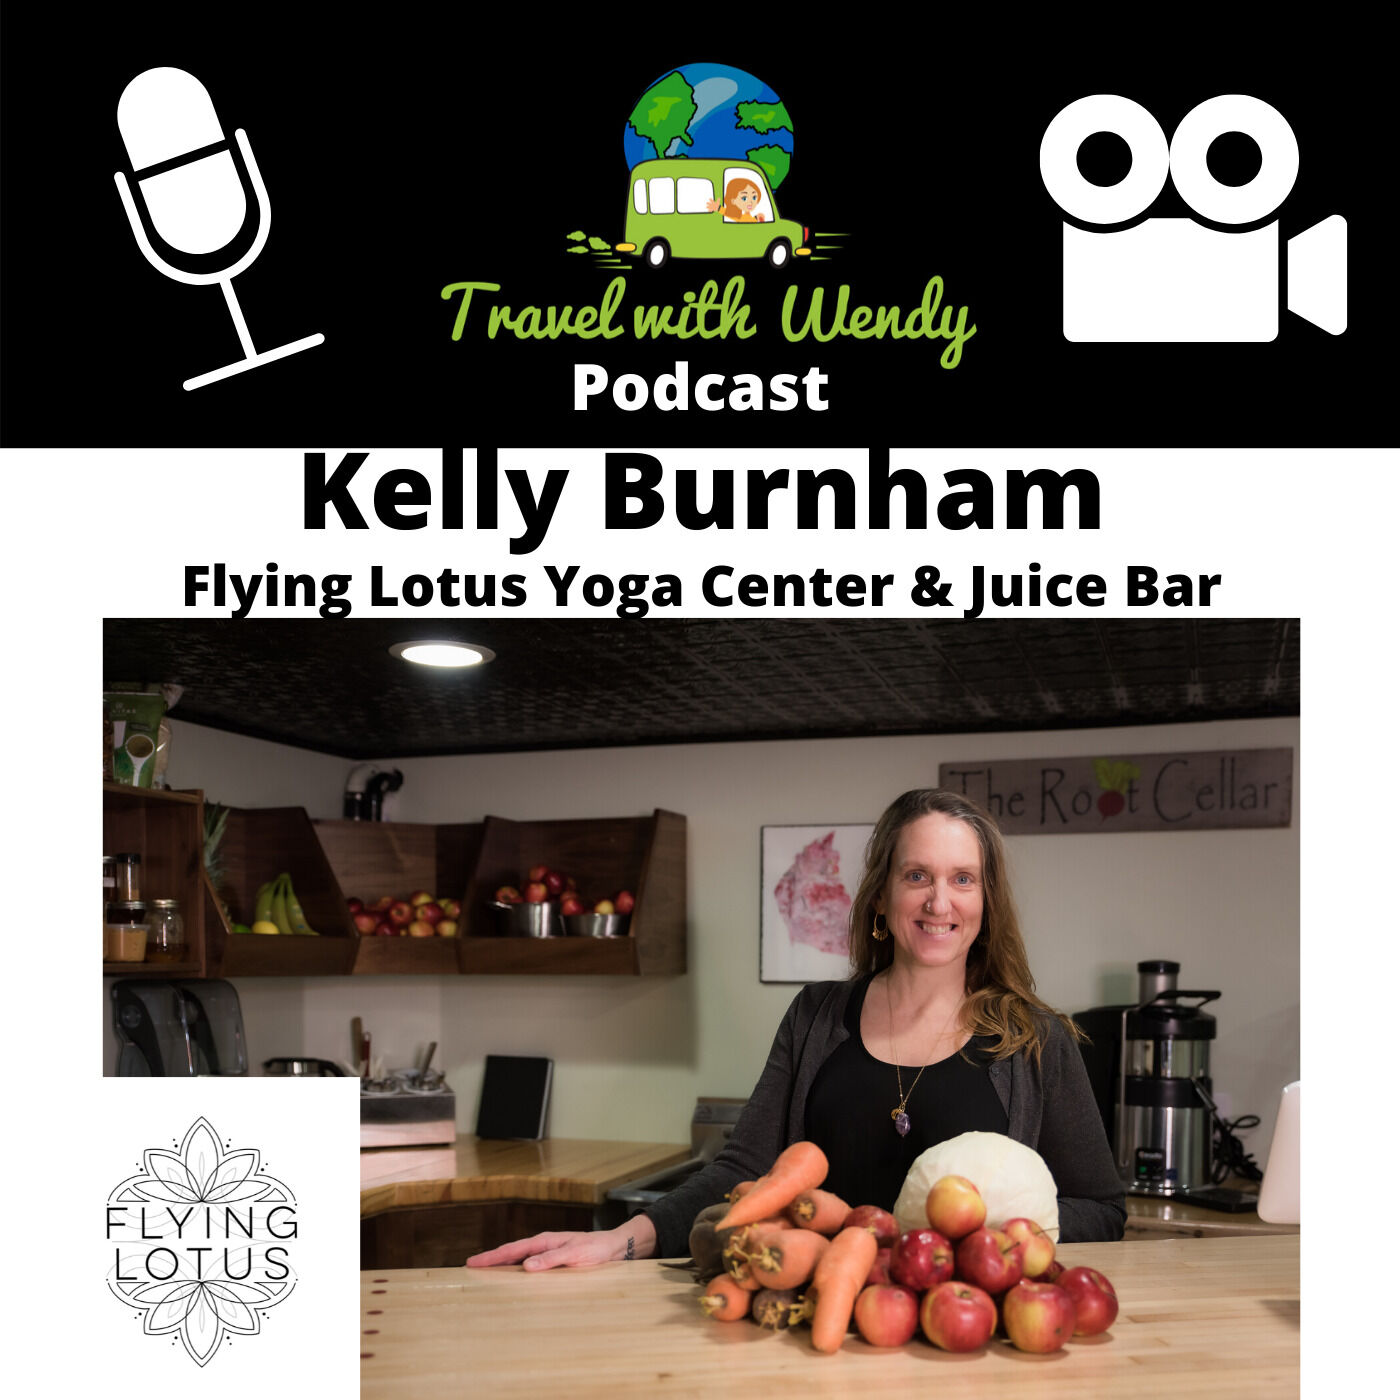 #16 Kelly Burnham - Flying Lotus Yoga & Juice Bar - CANTON, NY